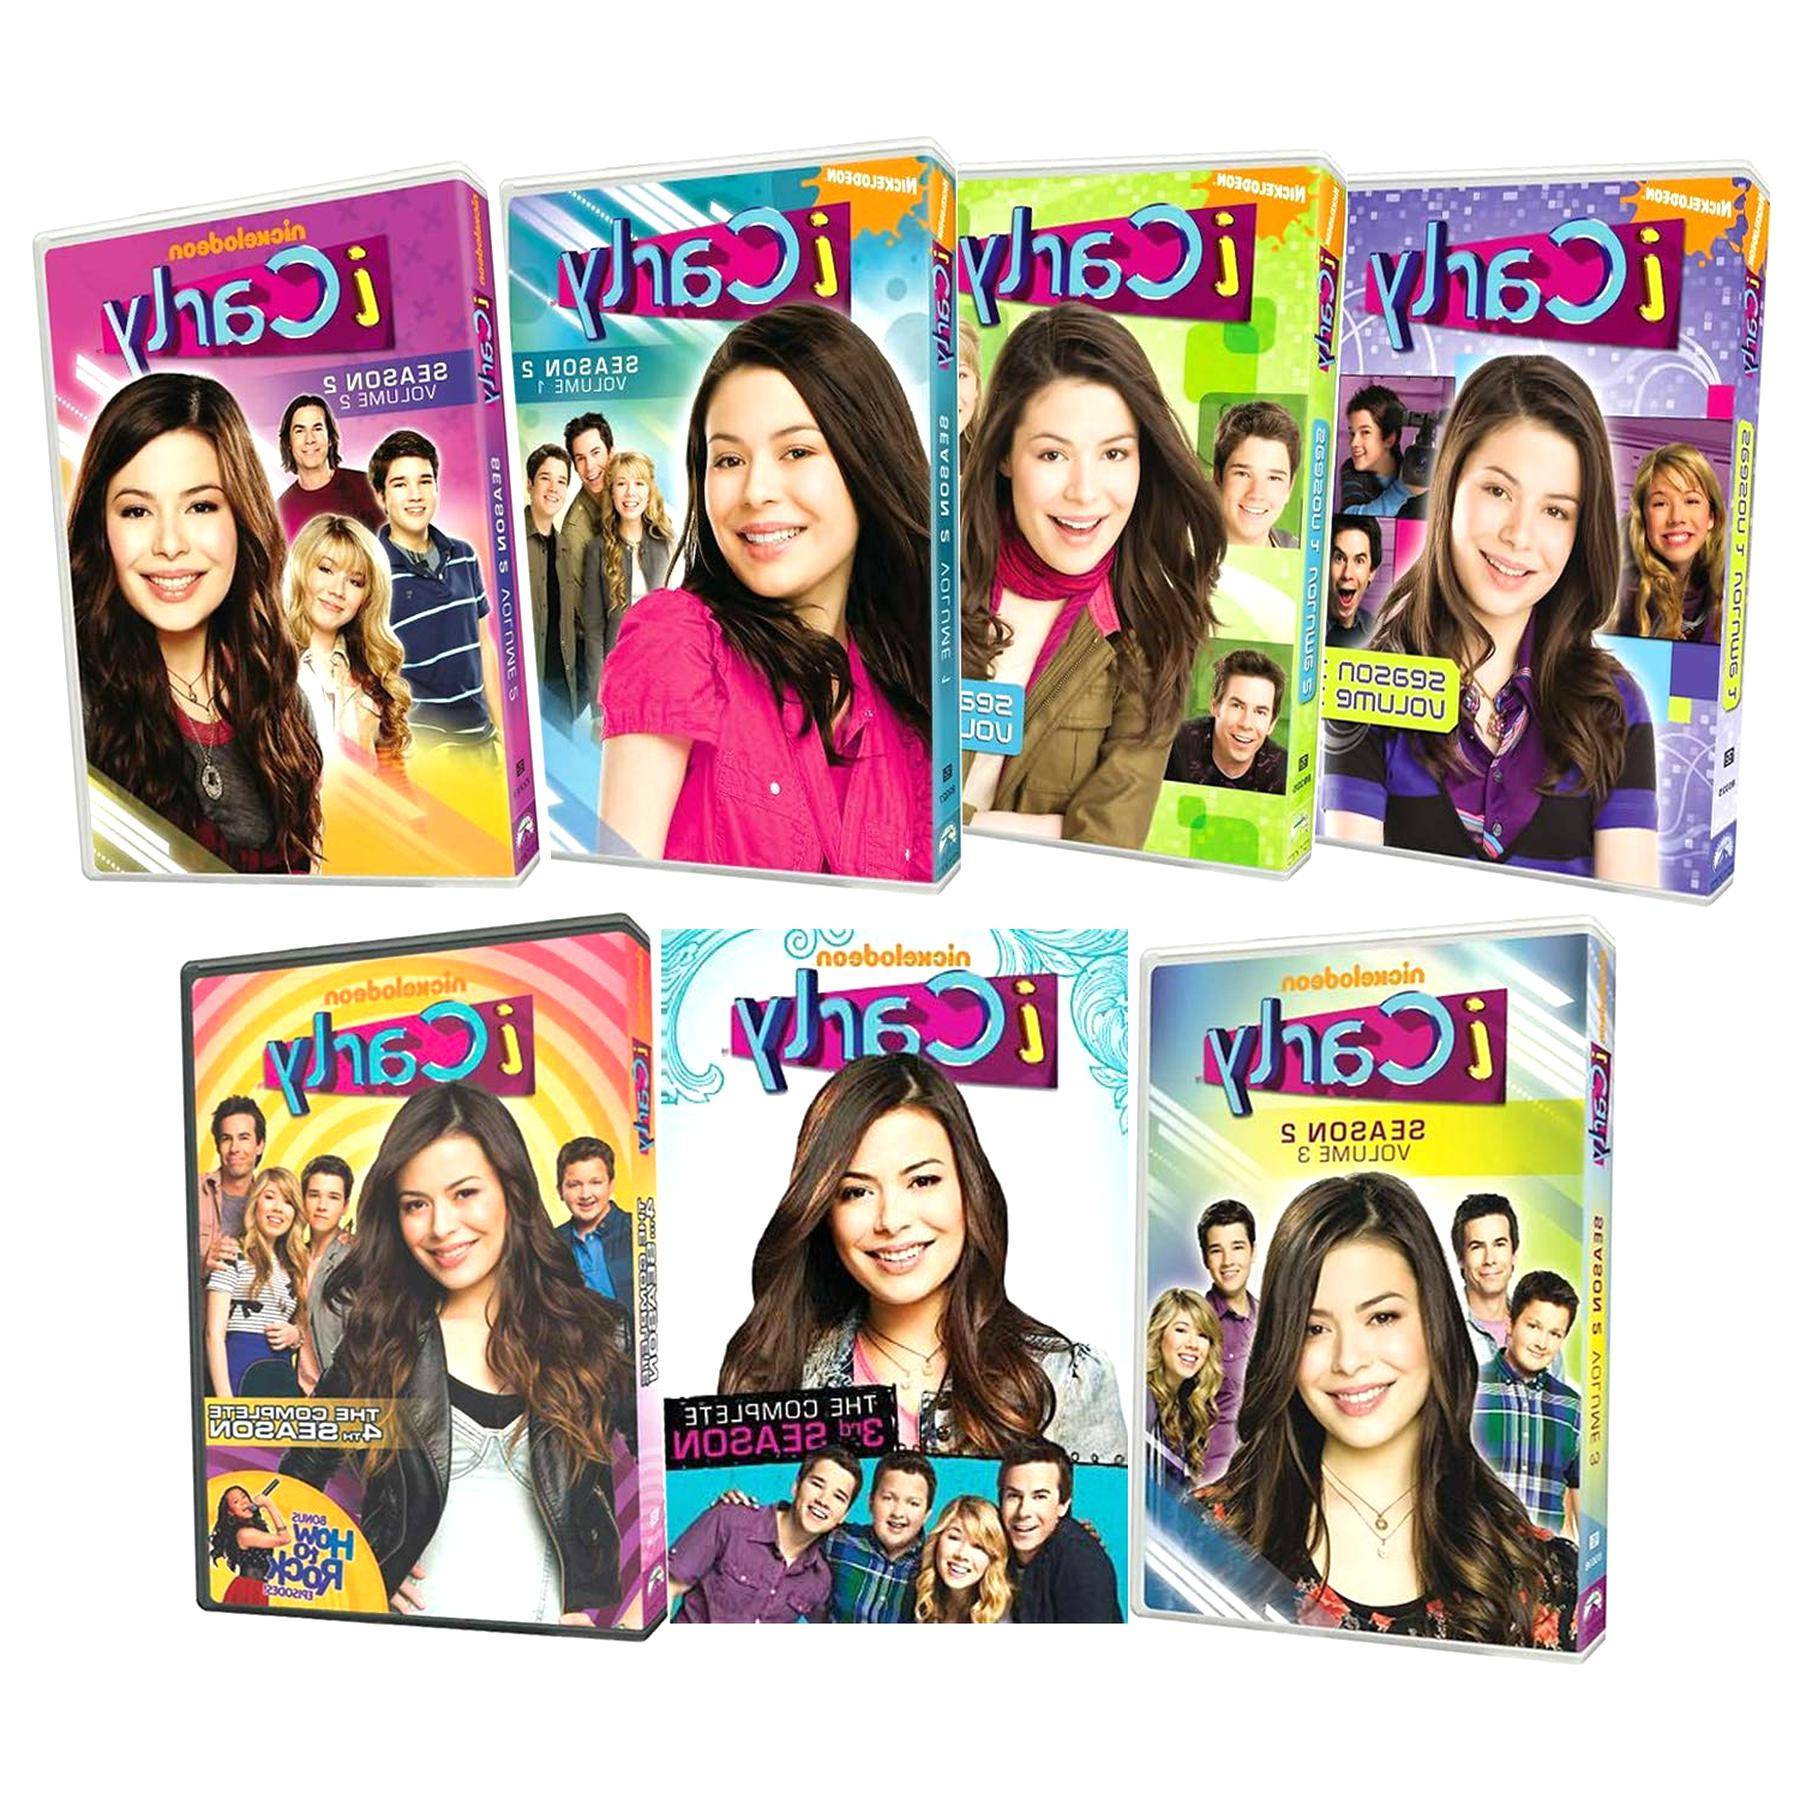 icarly dvd for sale